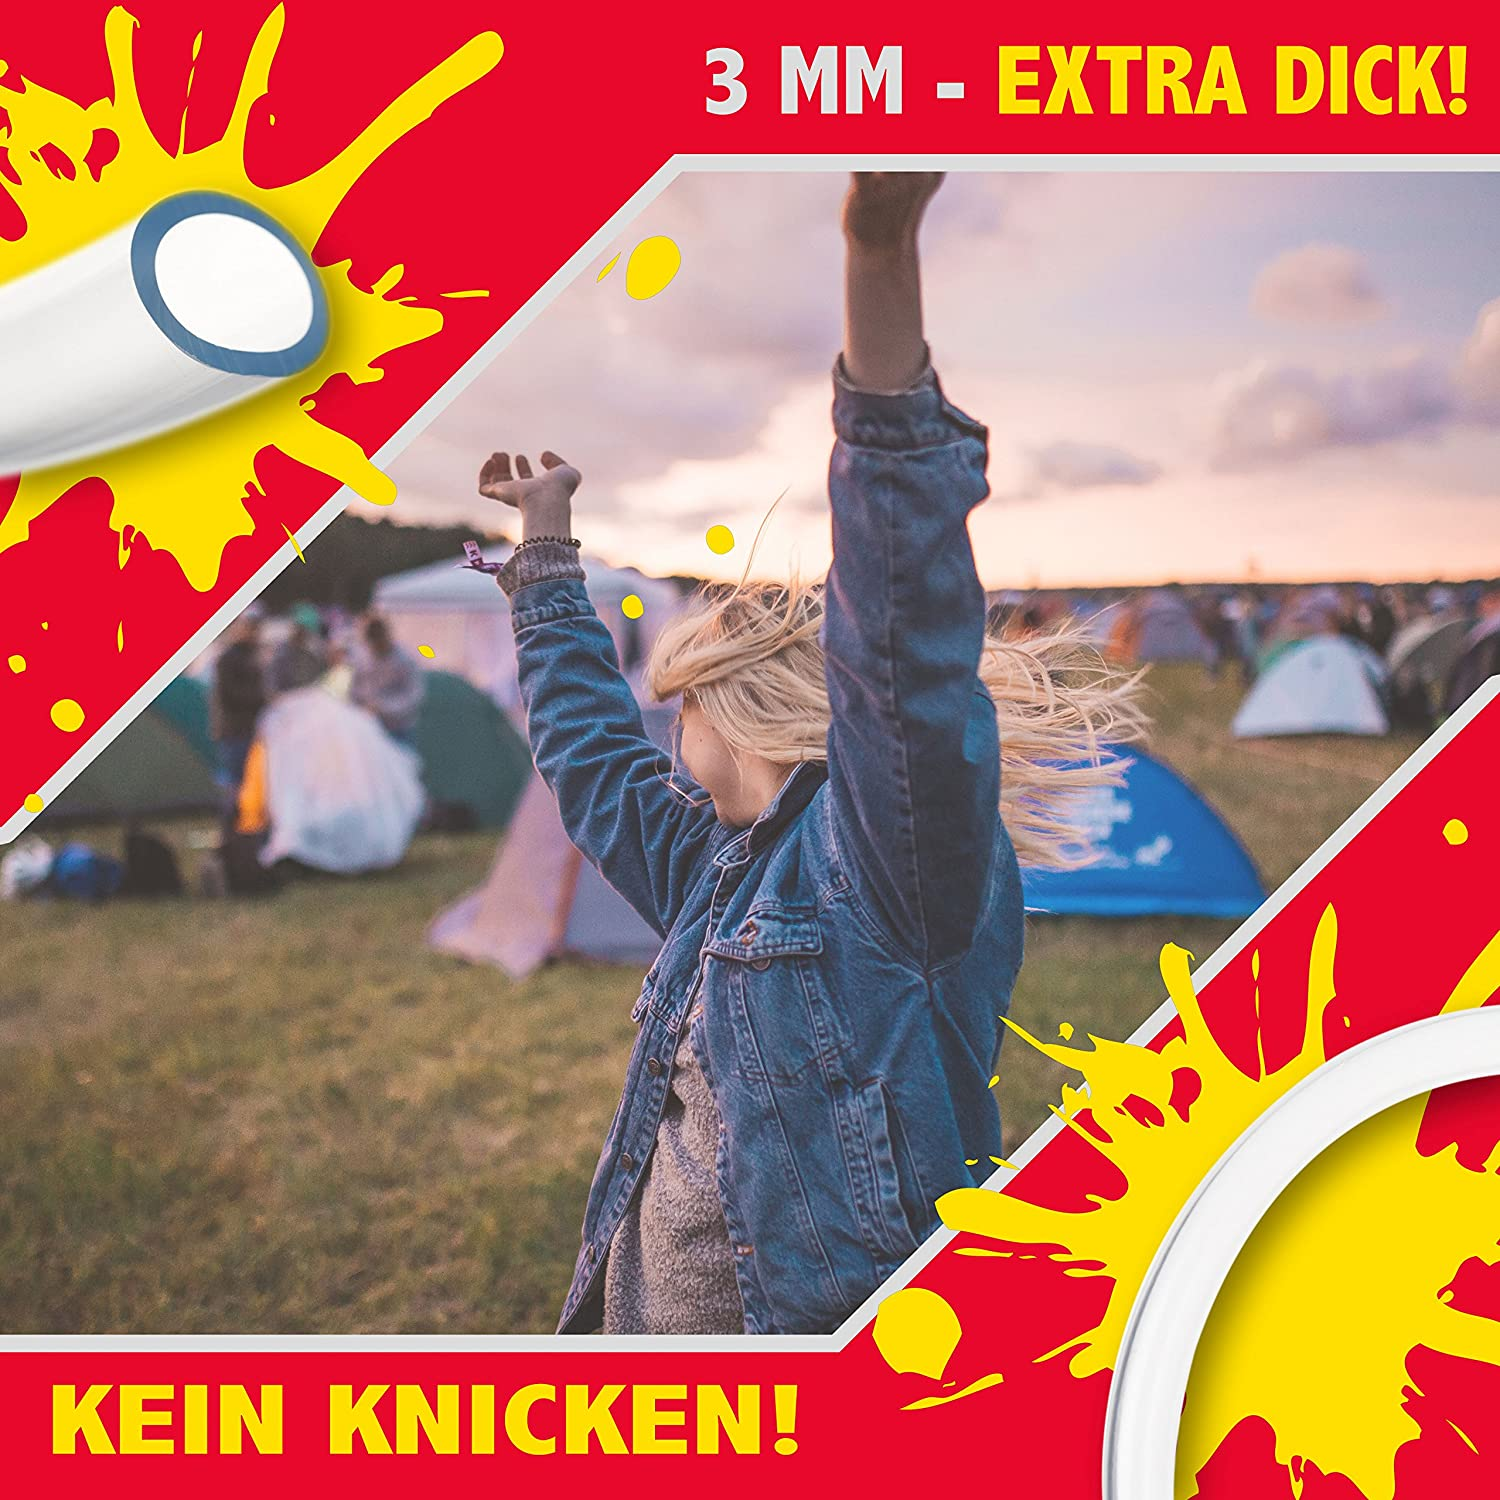 Beer Twister: Hurricane Beer-Bong 2,1 litre beer chute with stopcock /& replaceable mouthpiece perfect drinking game for parties /& festivals